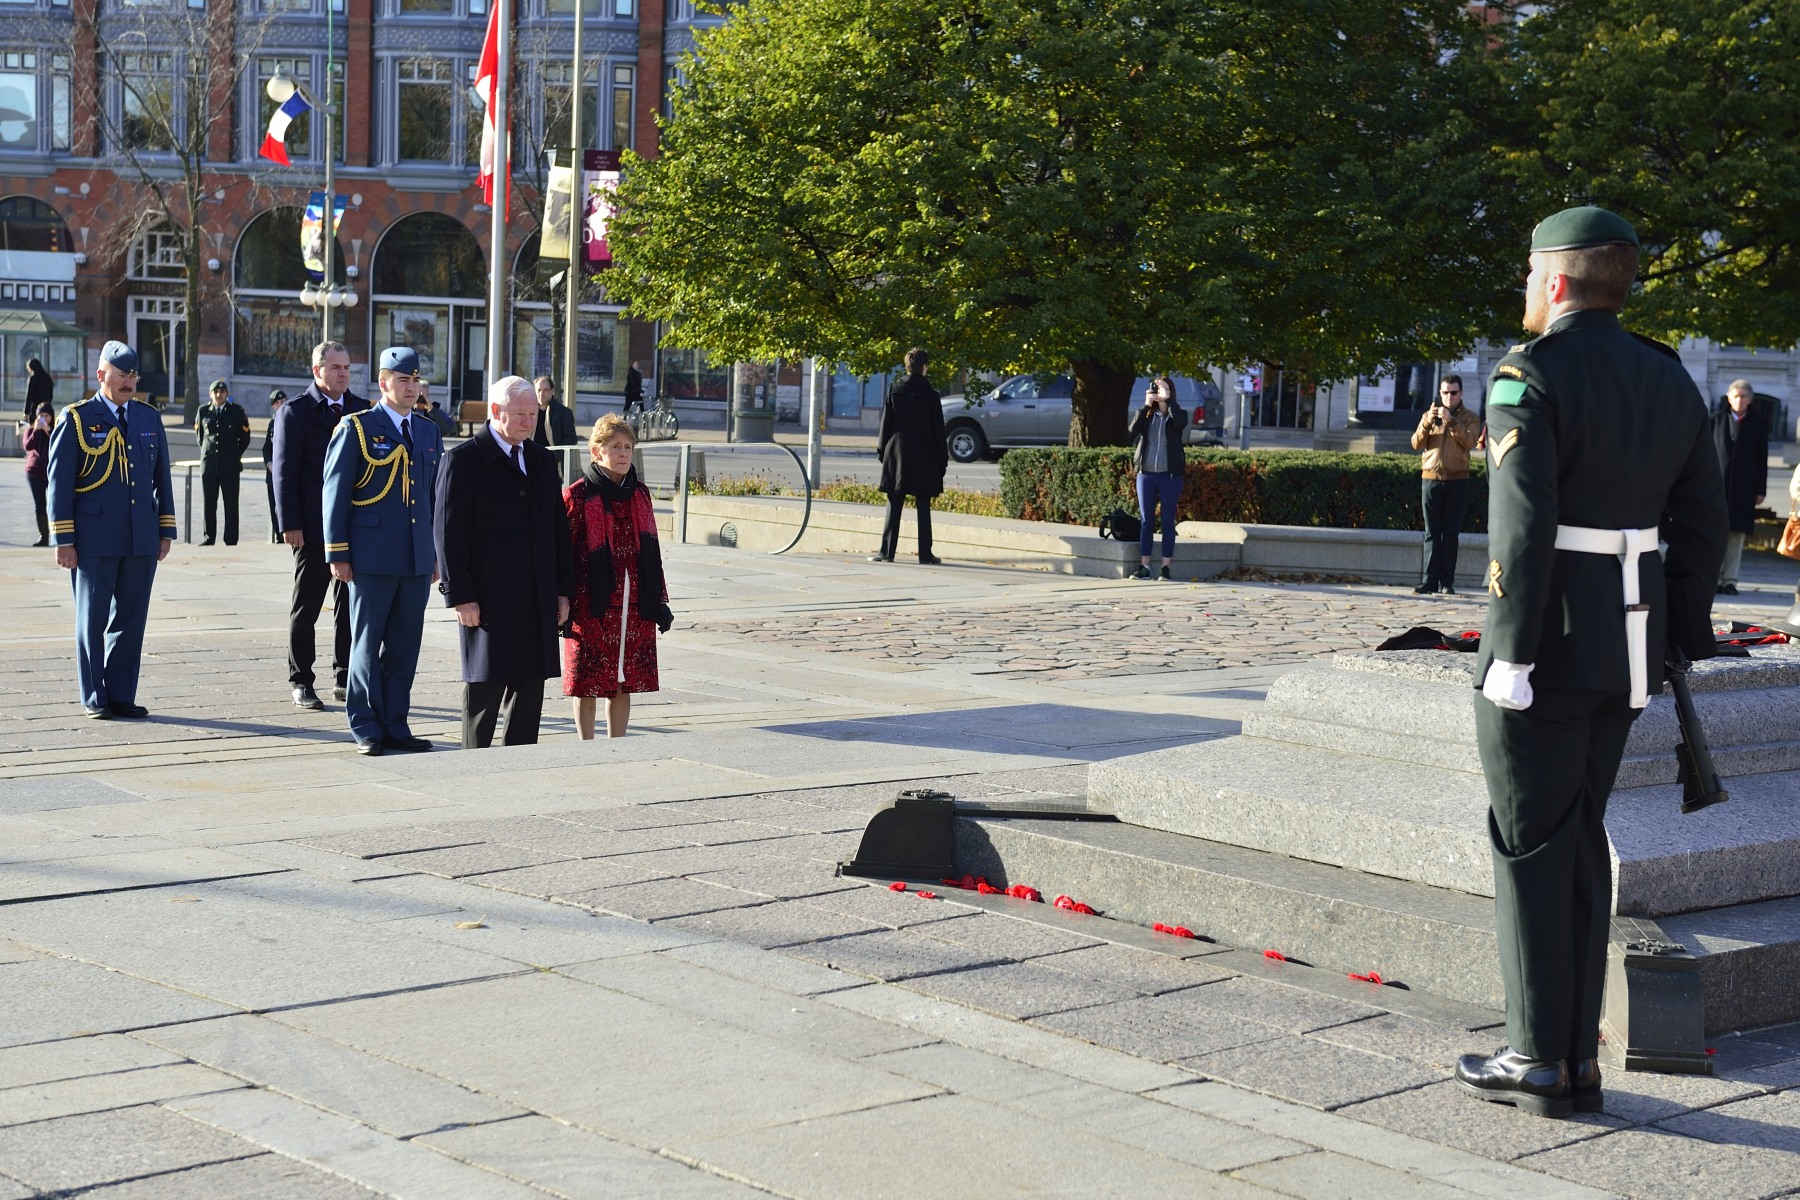 Their Excellencies paid their respects to Corporal Nathan Cirillo and Warrant Office Patrice Vincent, who was killed in St-Jean-sur-Richelieu, Quebec, on October 20, 2014.